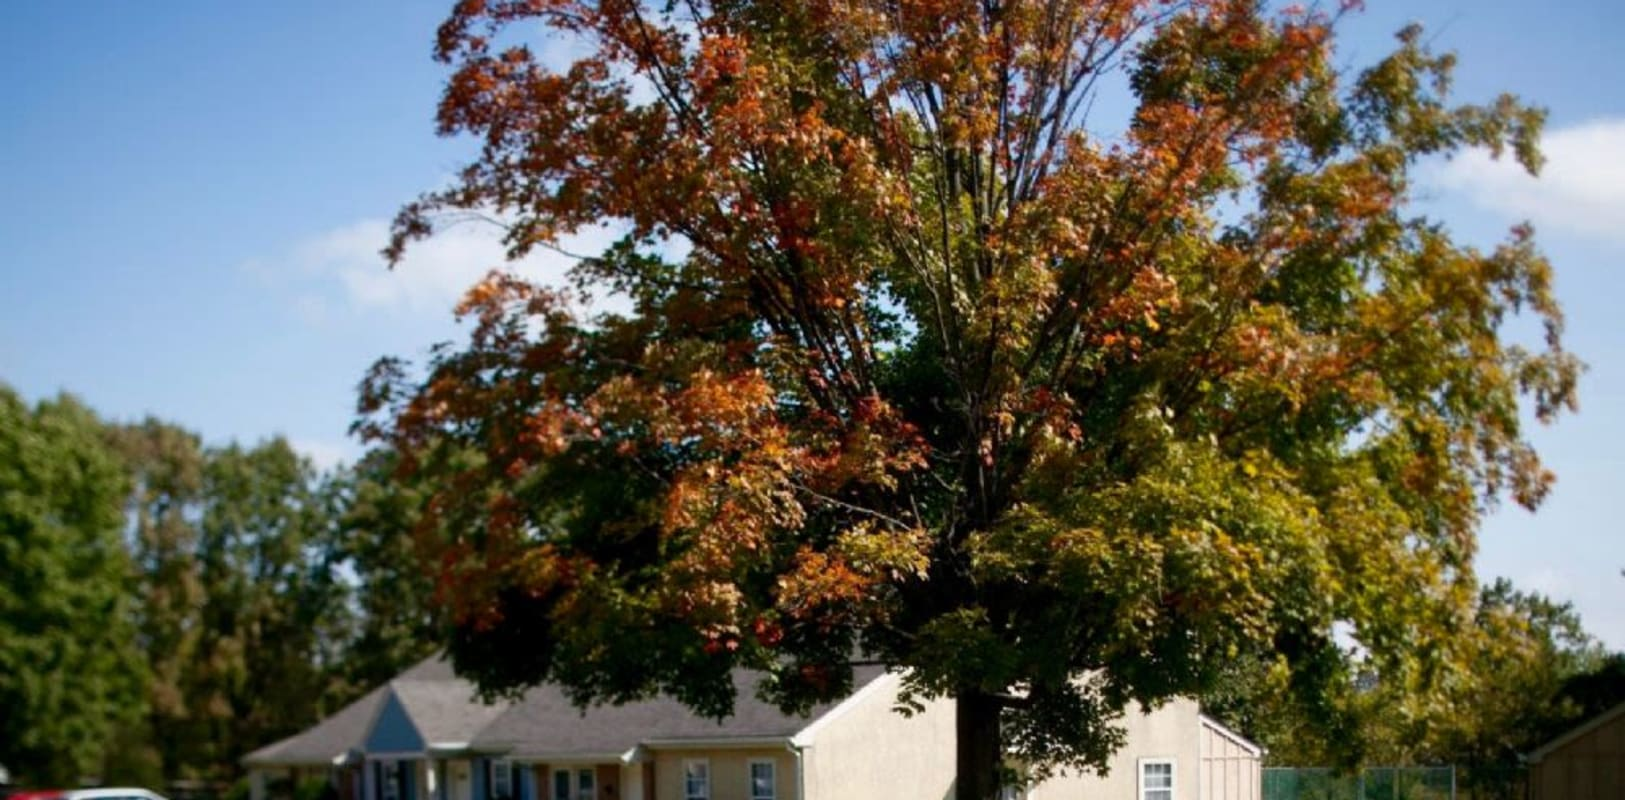 Beautiful large tree with fall colors near Oley Meadows in Oley, Pennsylvania